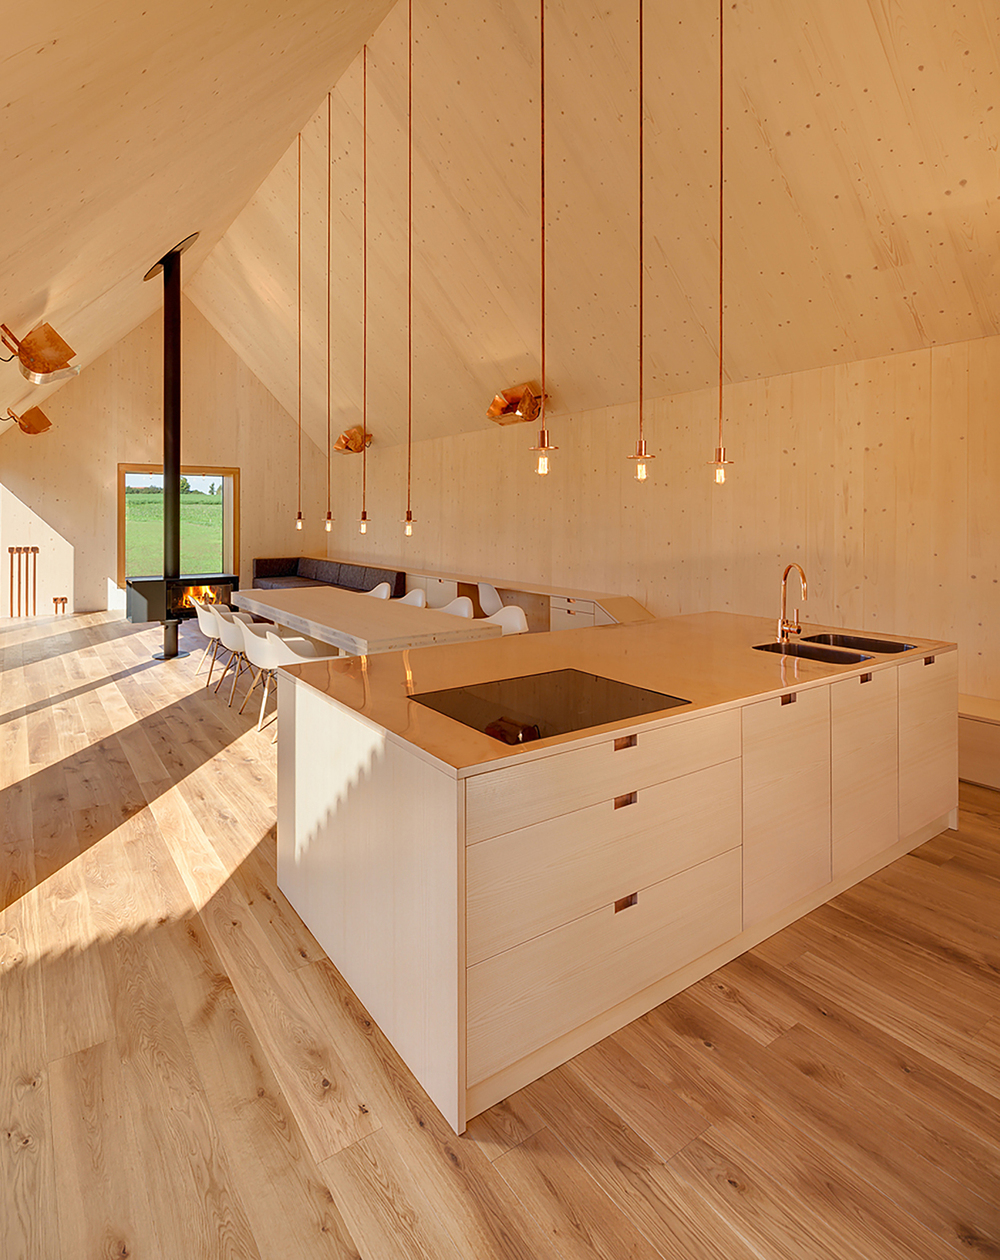 The Woodworks: Kuhnlein Architektur design Timber House